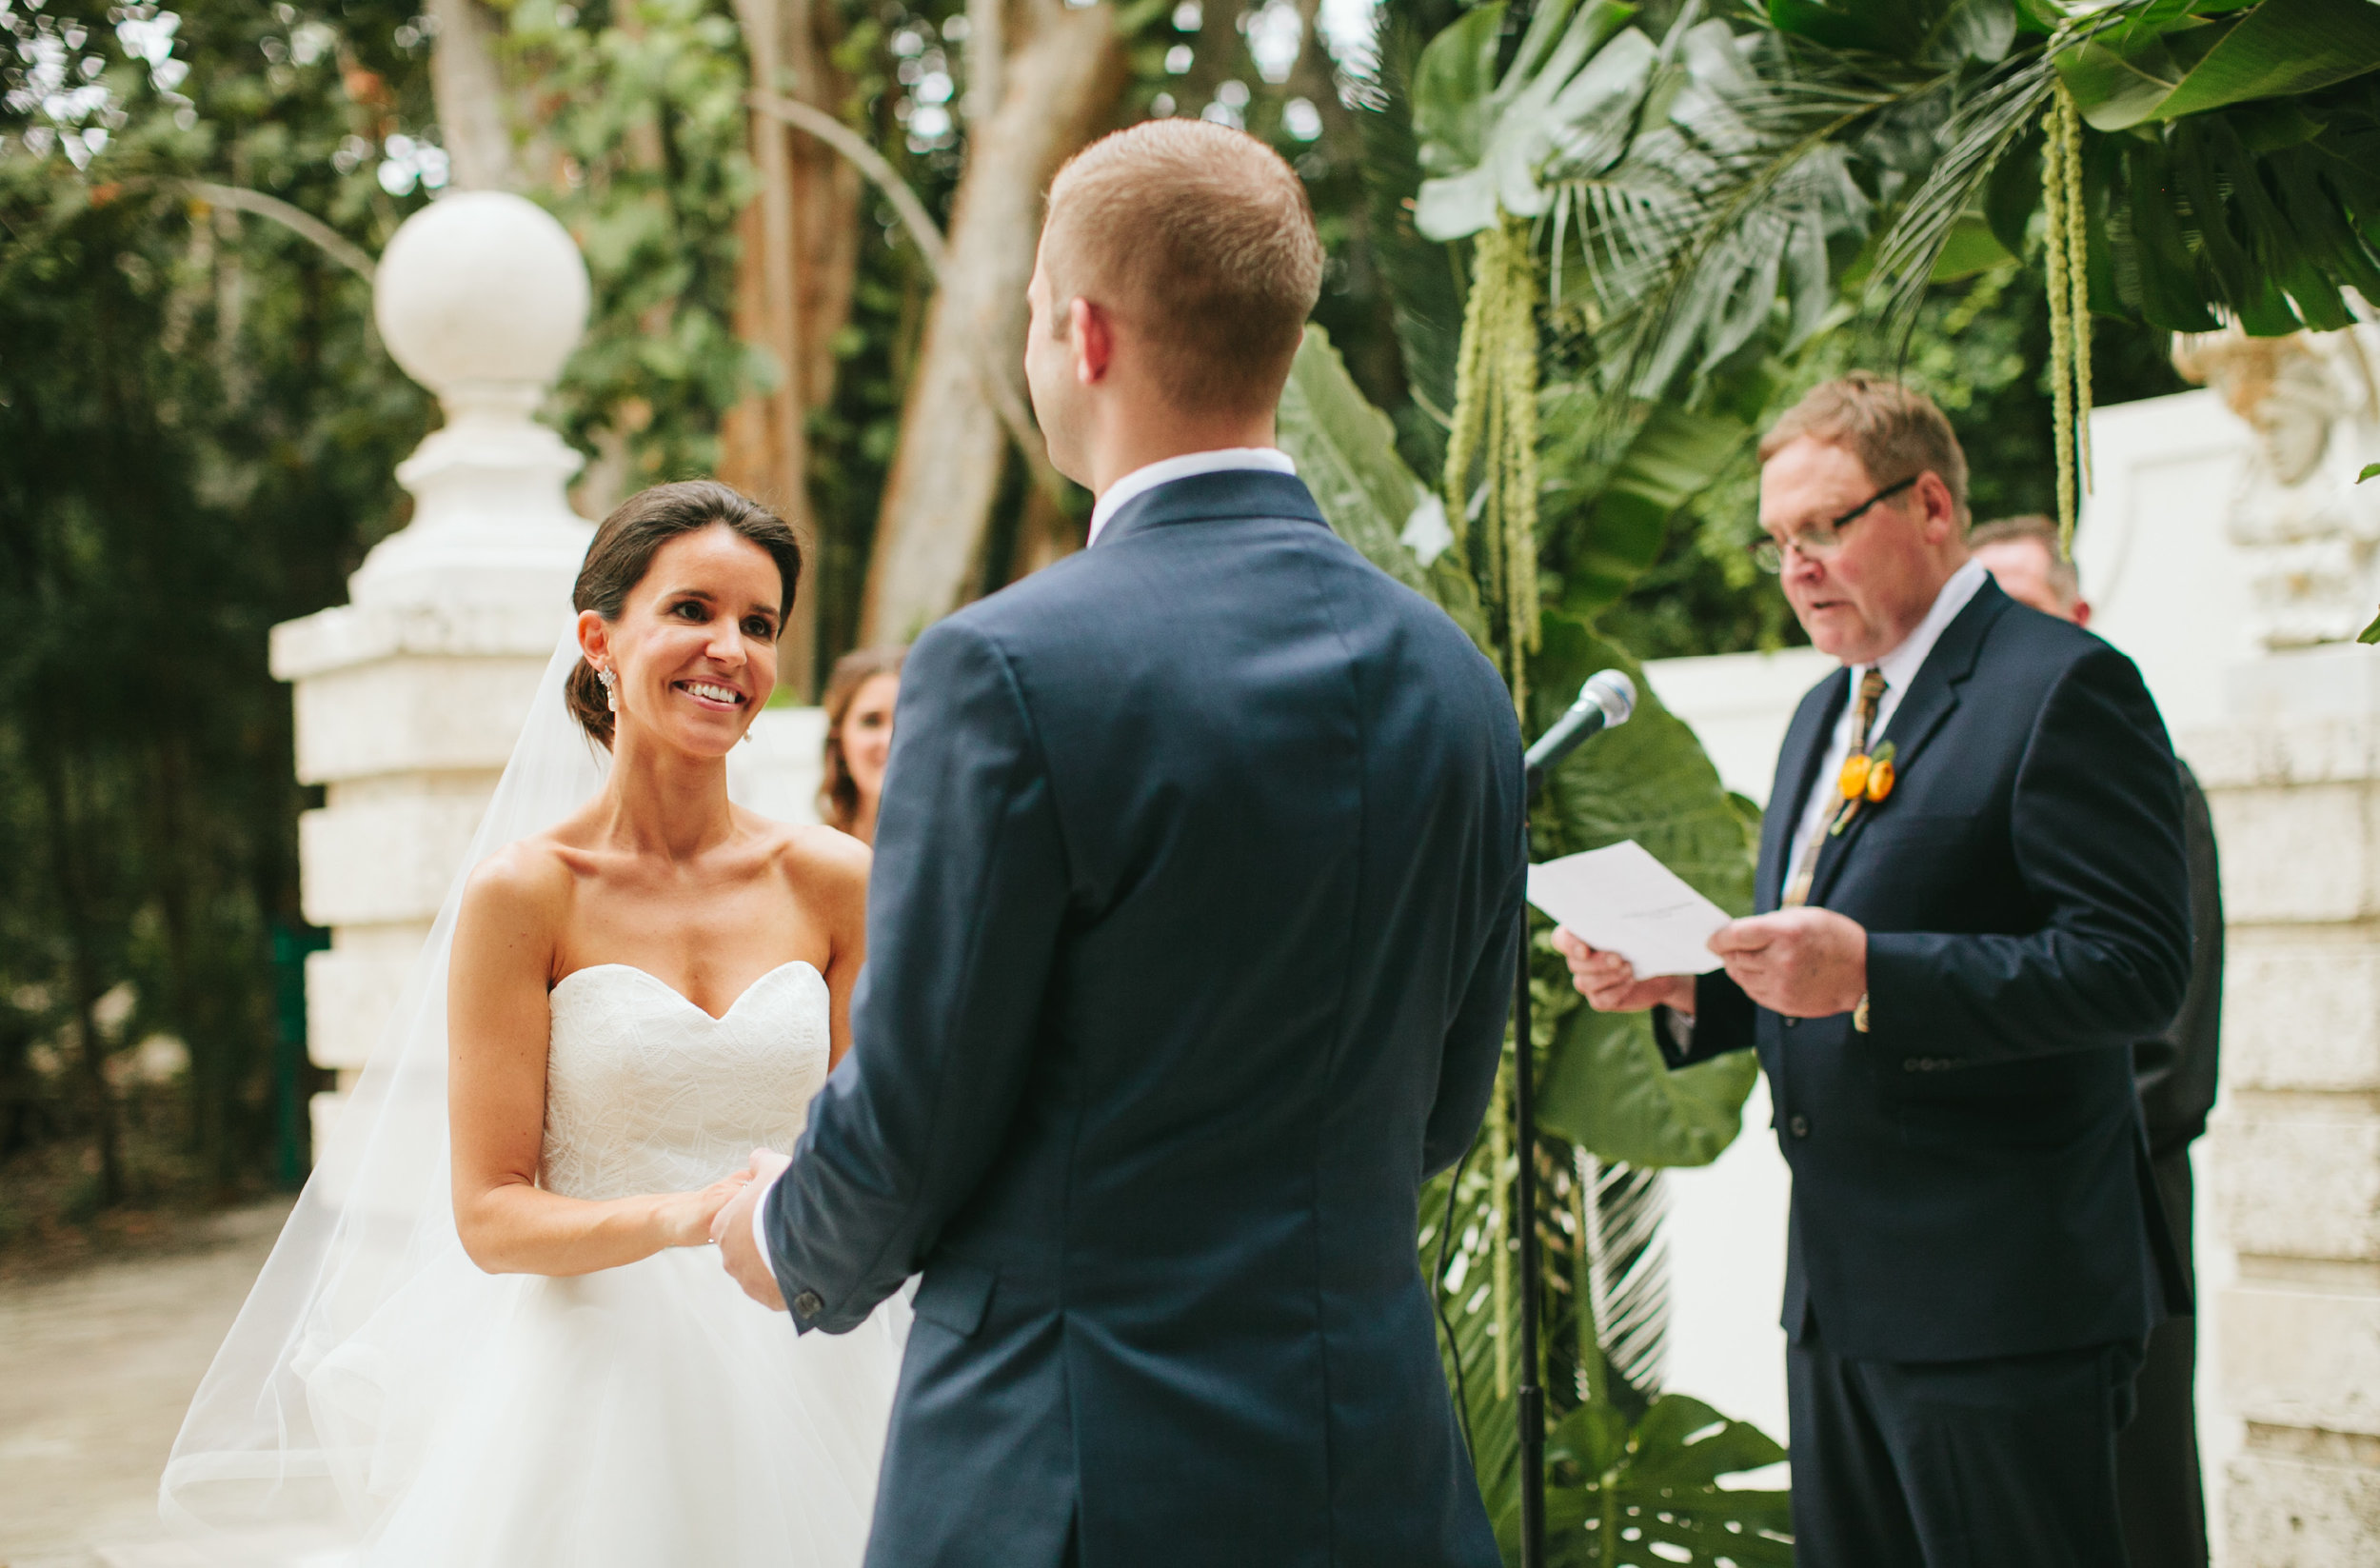 Heather + Greg's Wedding at the Bonnet House Ft Lauderdale54.jpg